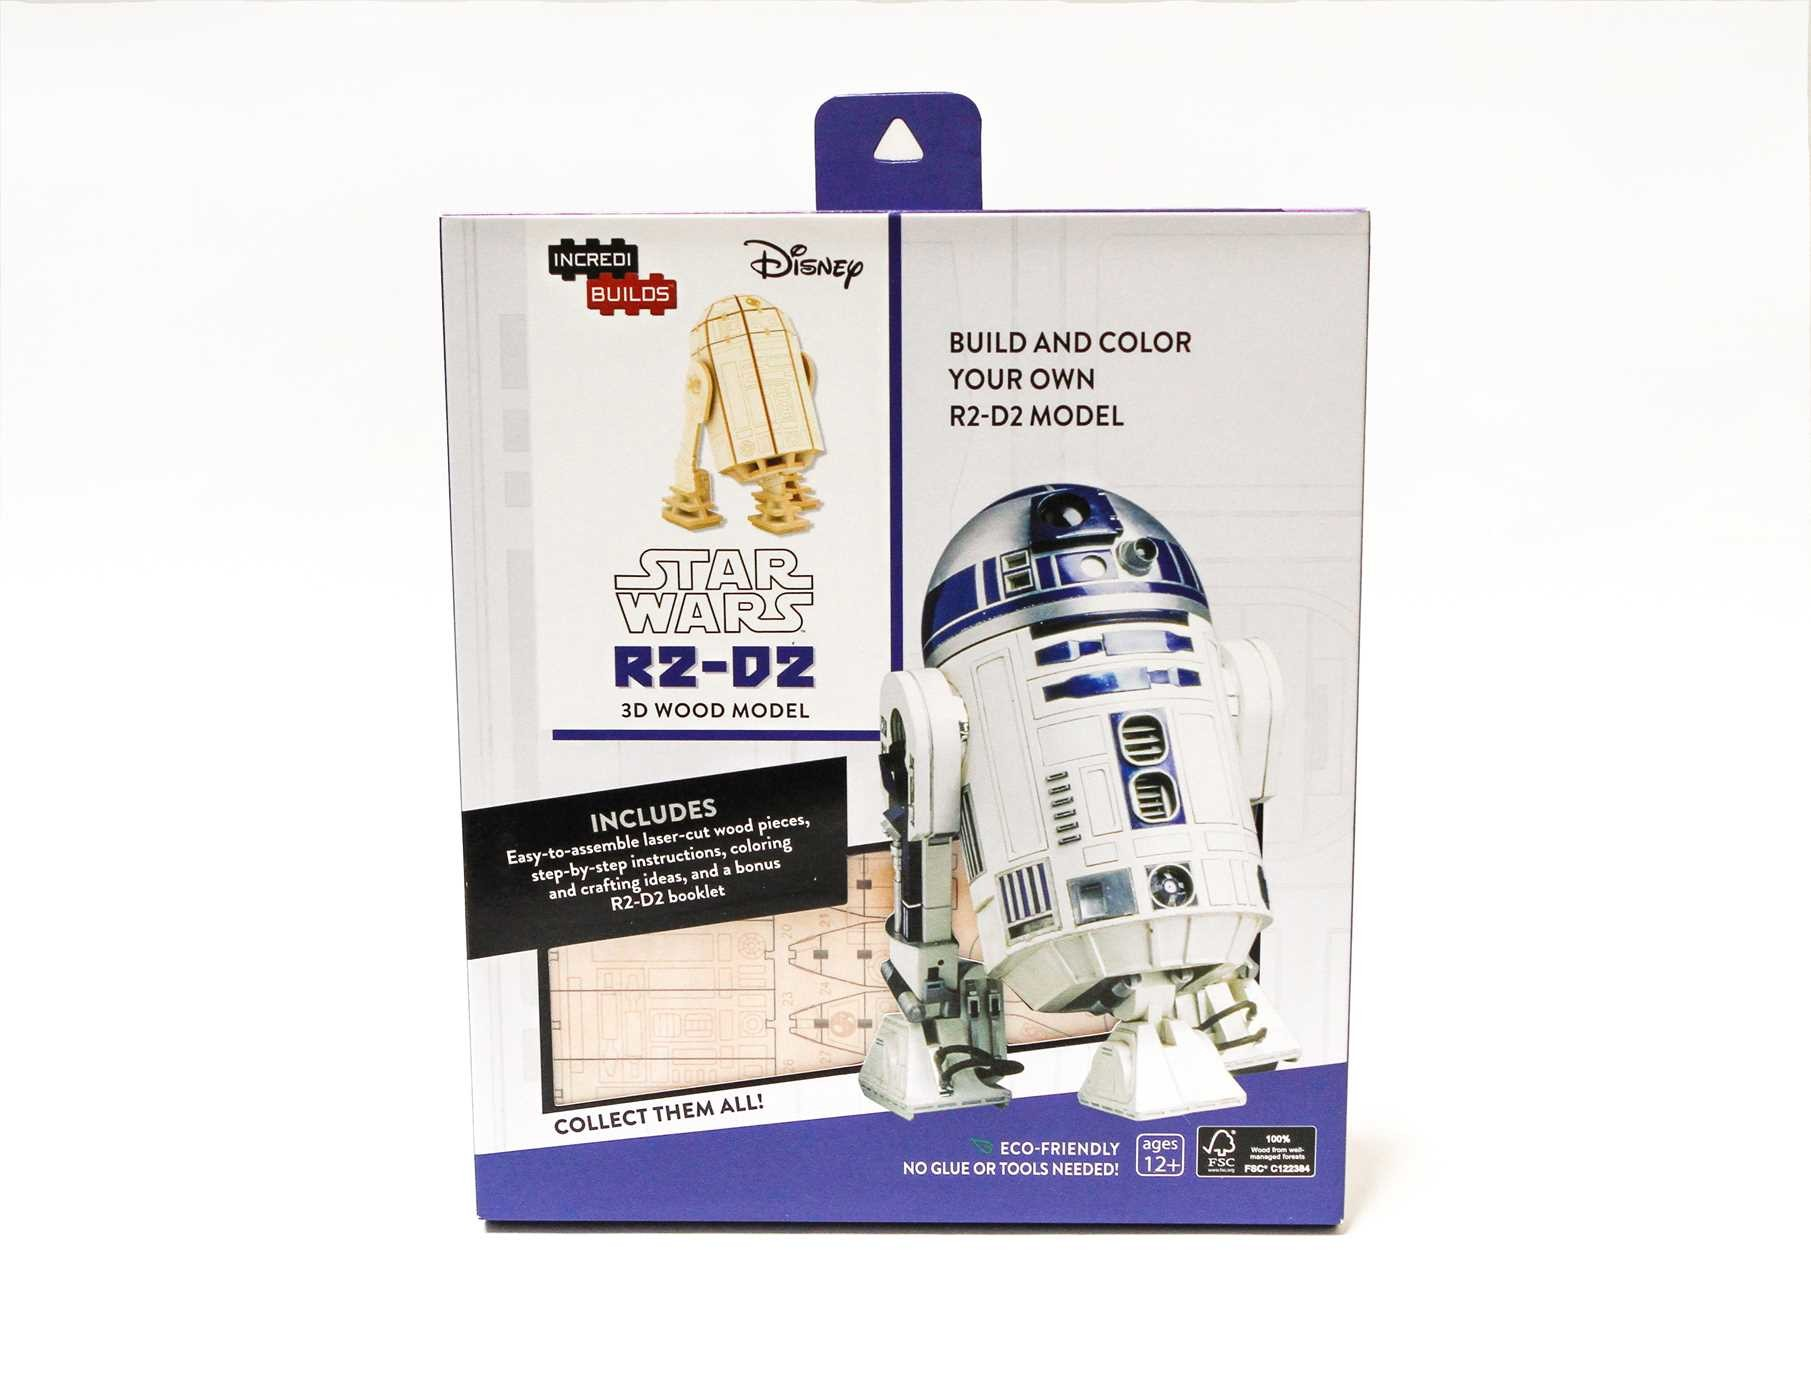 Incredibuilds star wars r2 d2 3d wood model 9781682980279.in02